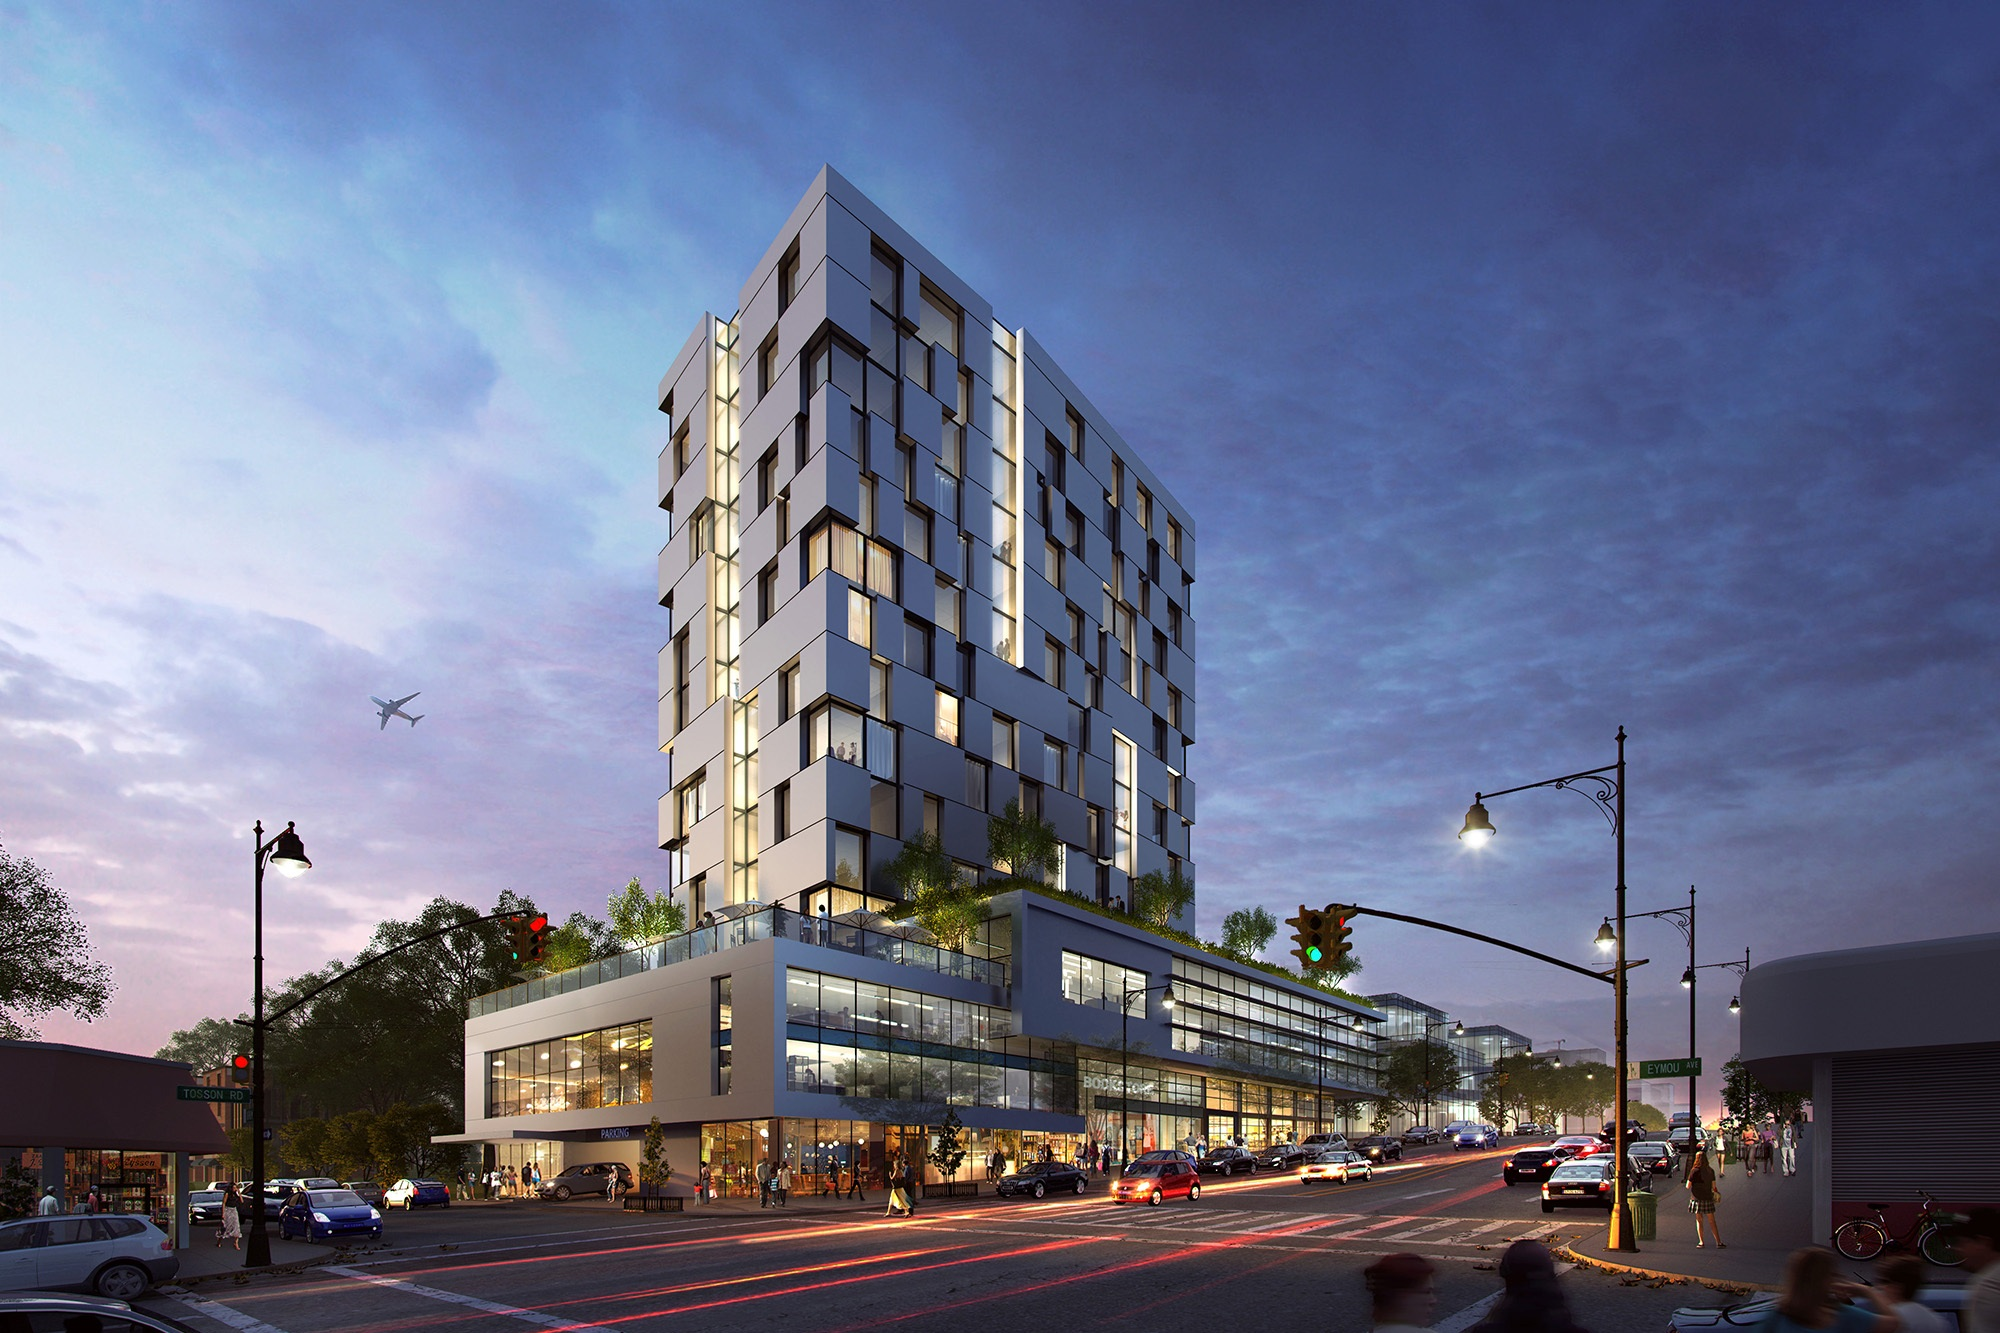 New Design Proposal in the Bronx - April 2017Loci's design proposal for a new affordable housing development in the Bronx.